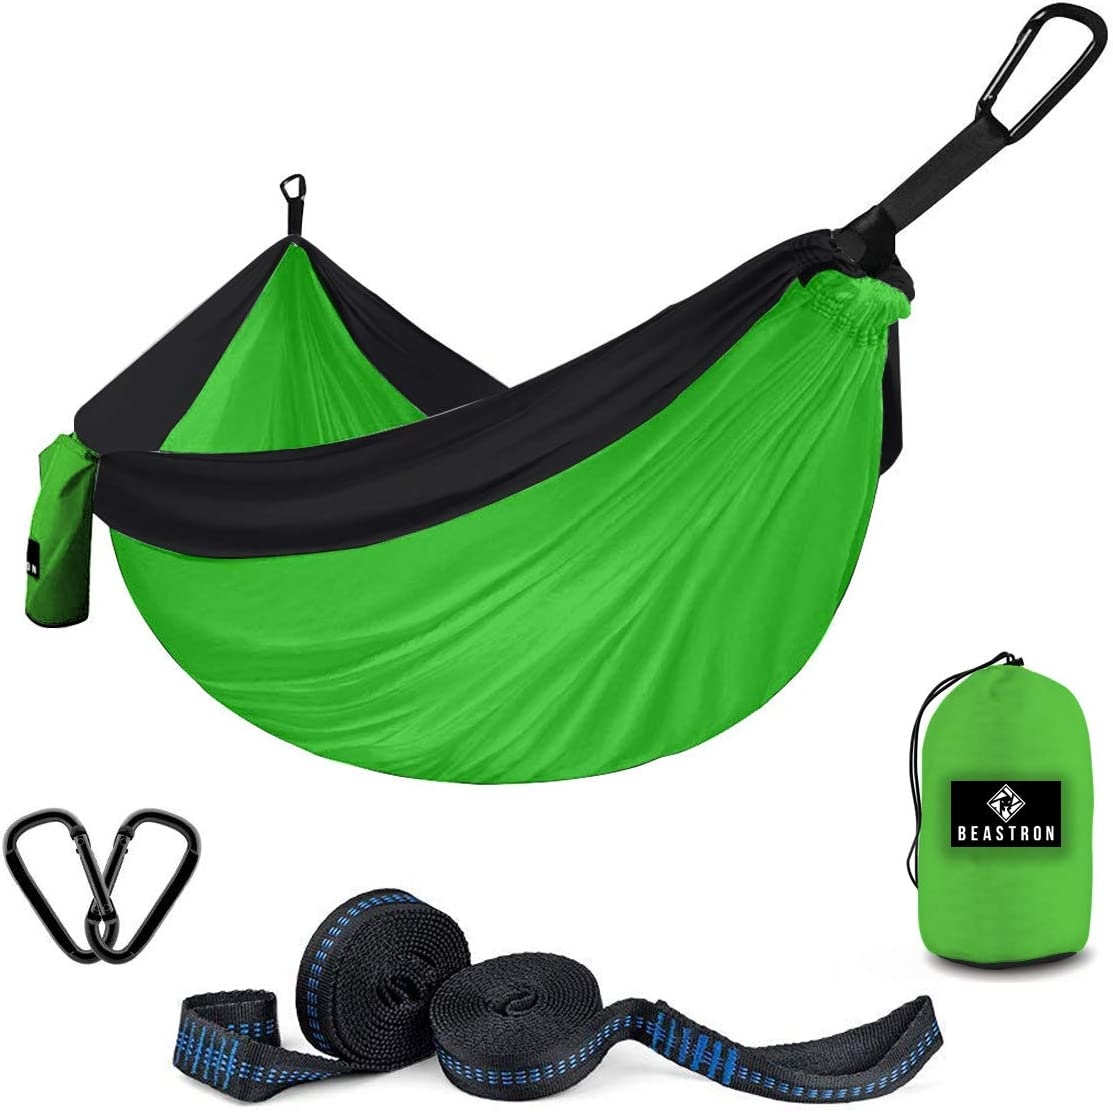 Beastron Camping Hammock Double Hiking Hammock with Tree Straps – Max 600 lb Portable Travel Backpacking Nylon